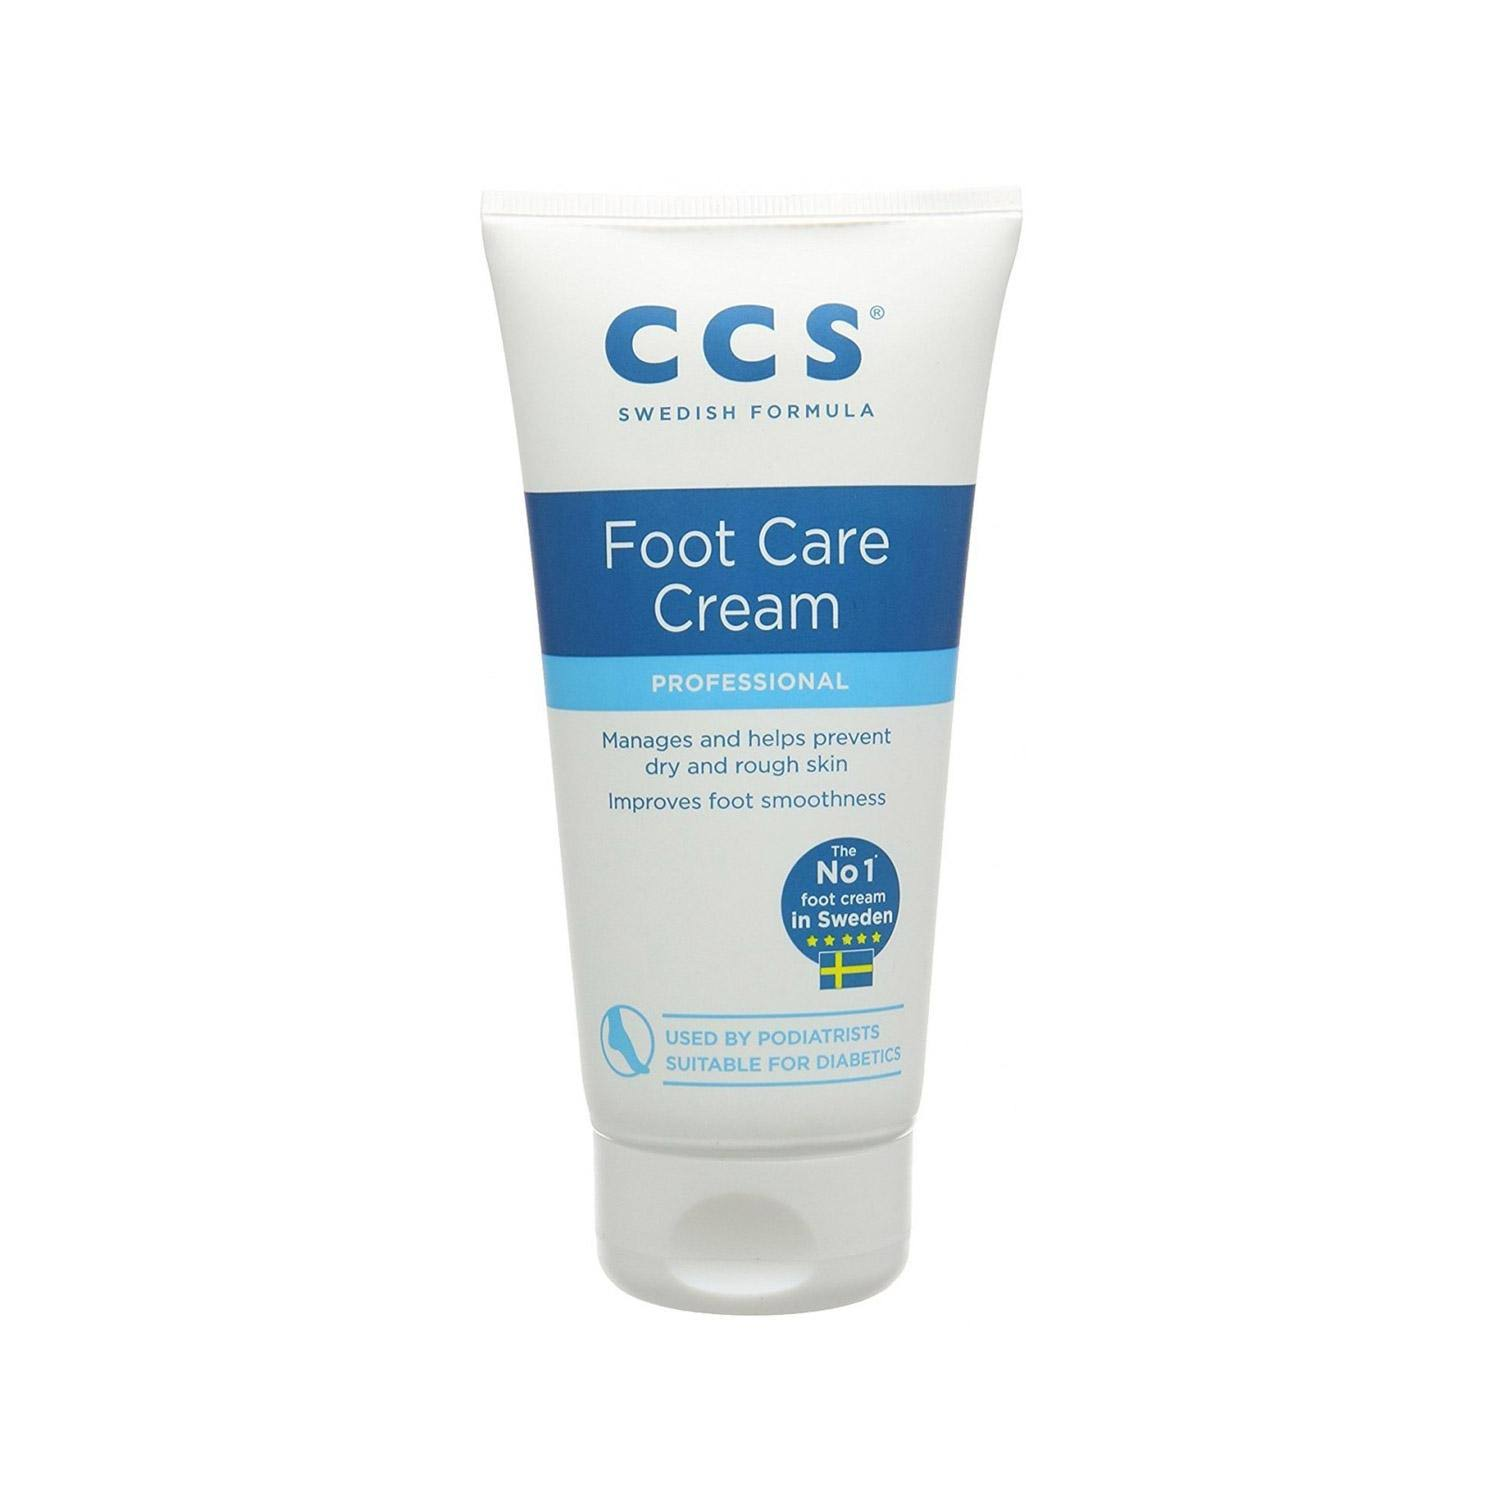 Ccs Professional Foot Care Cream - 175ml